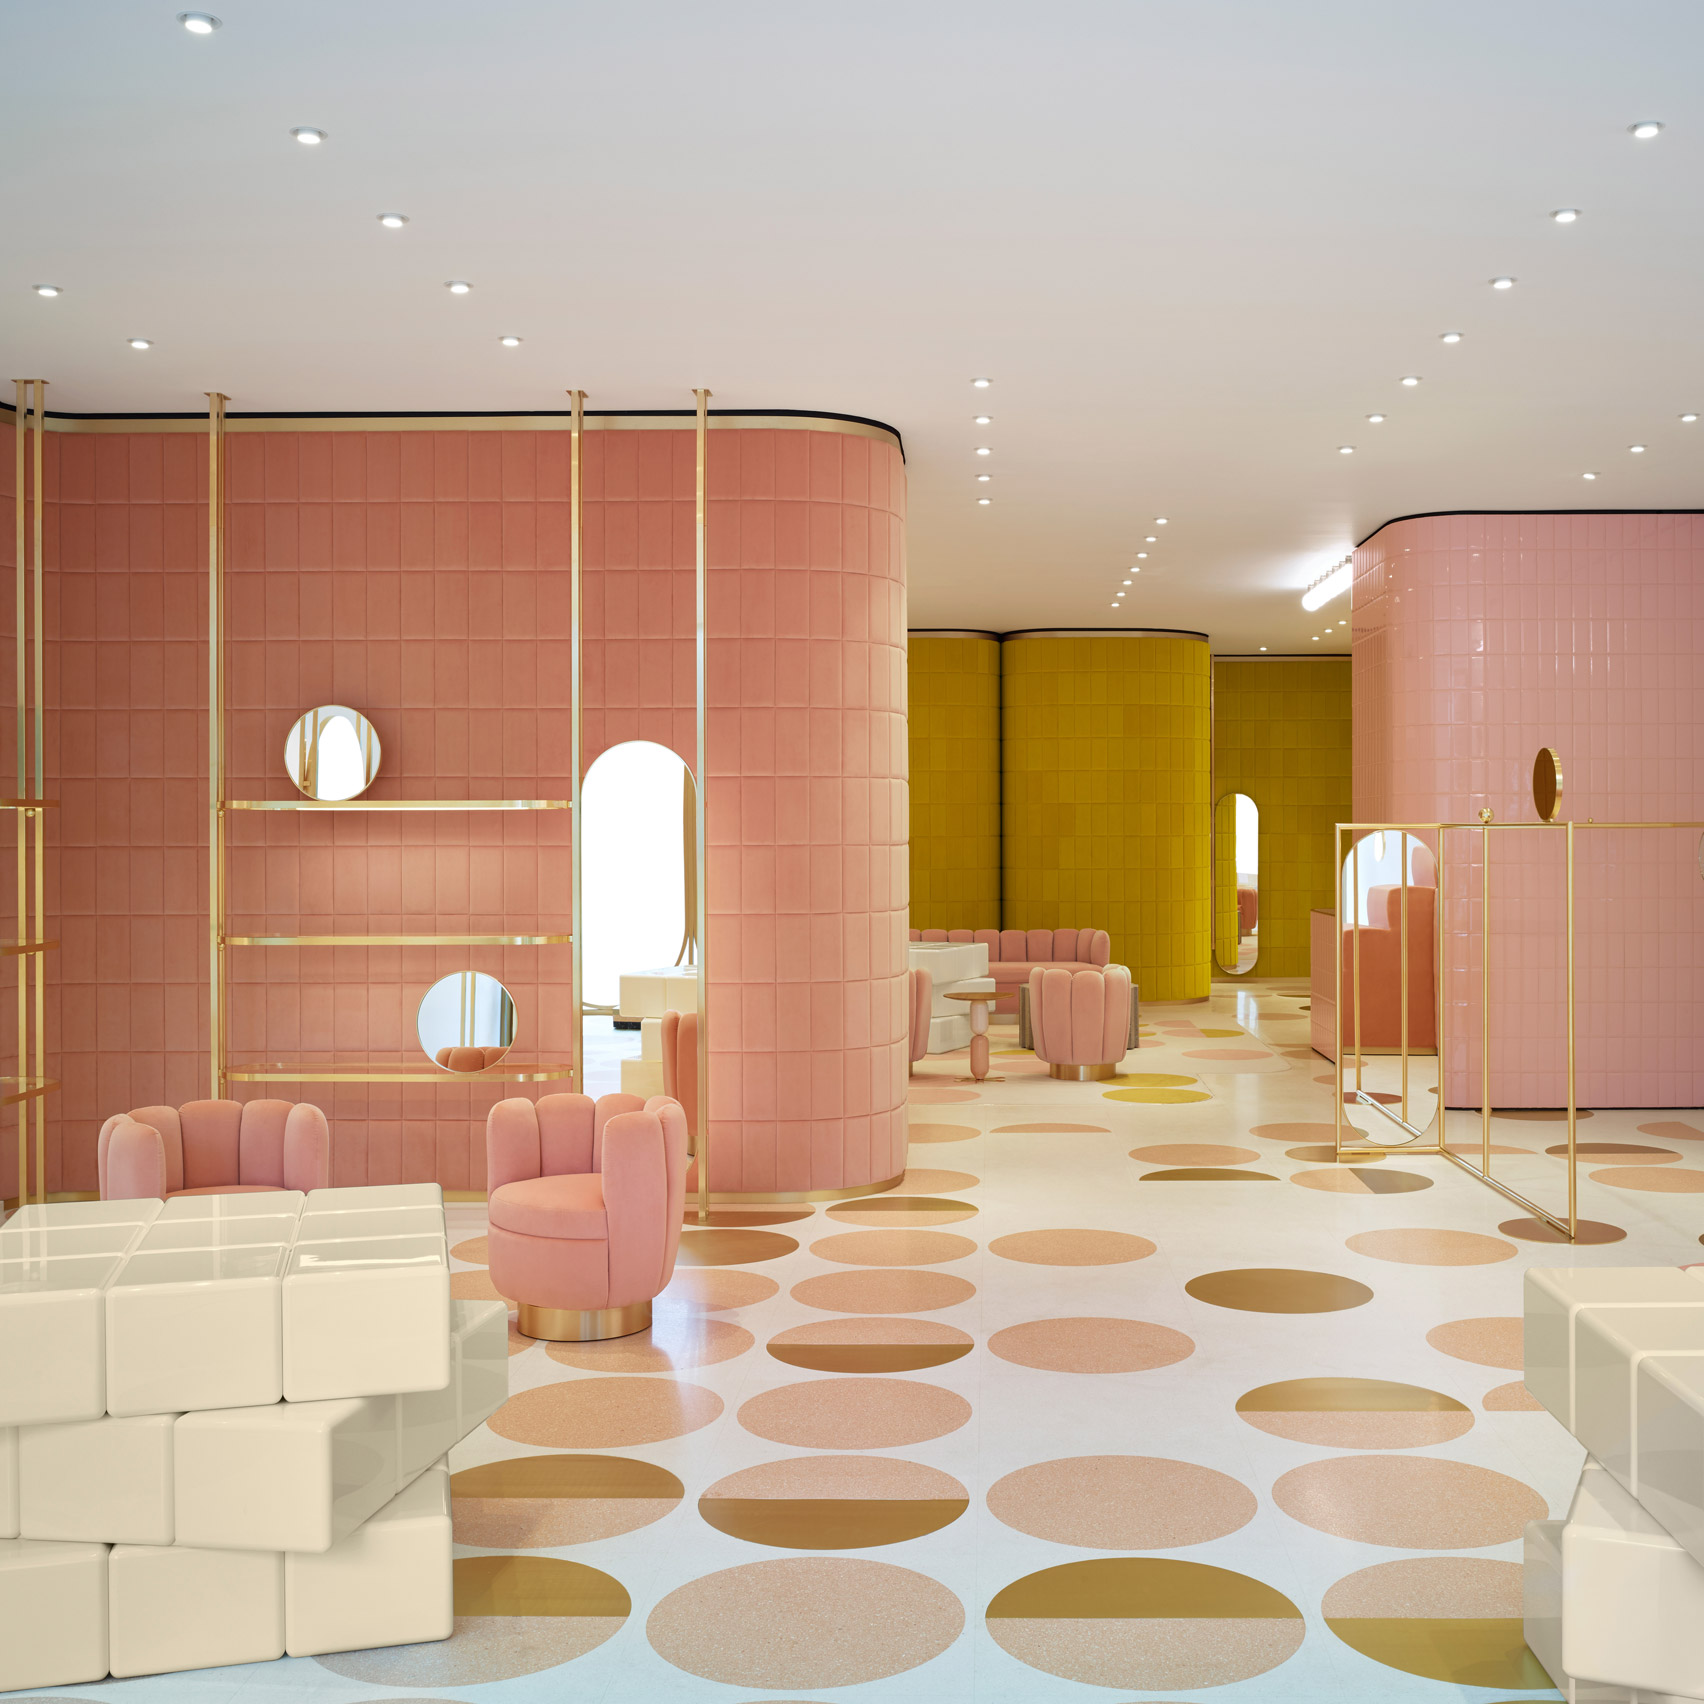 Charmant Five Of The Most Appealing Interior Design Roles On Dezeen Jobs This Week